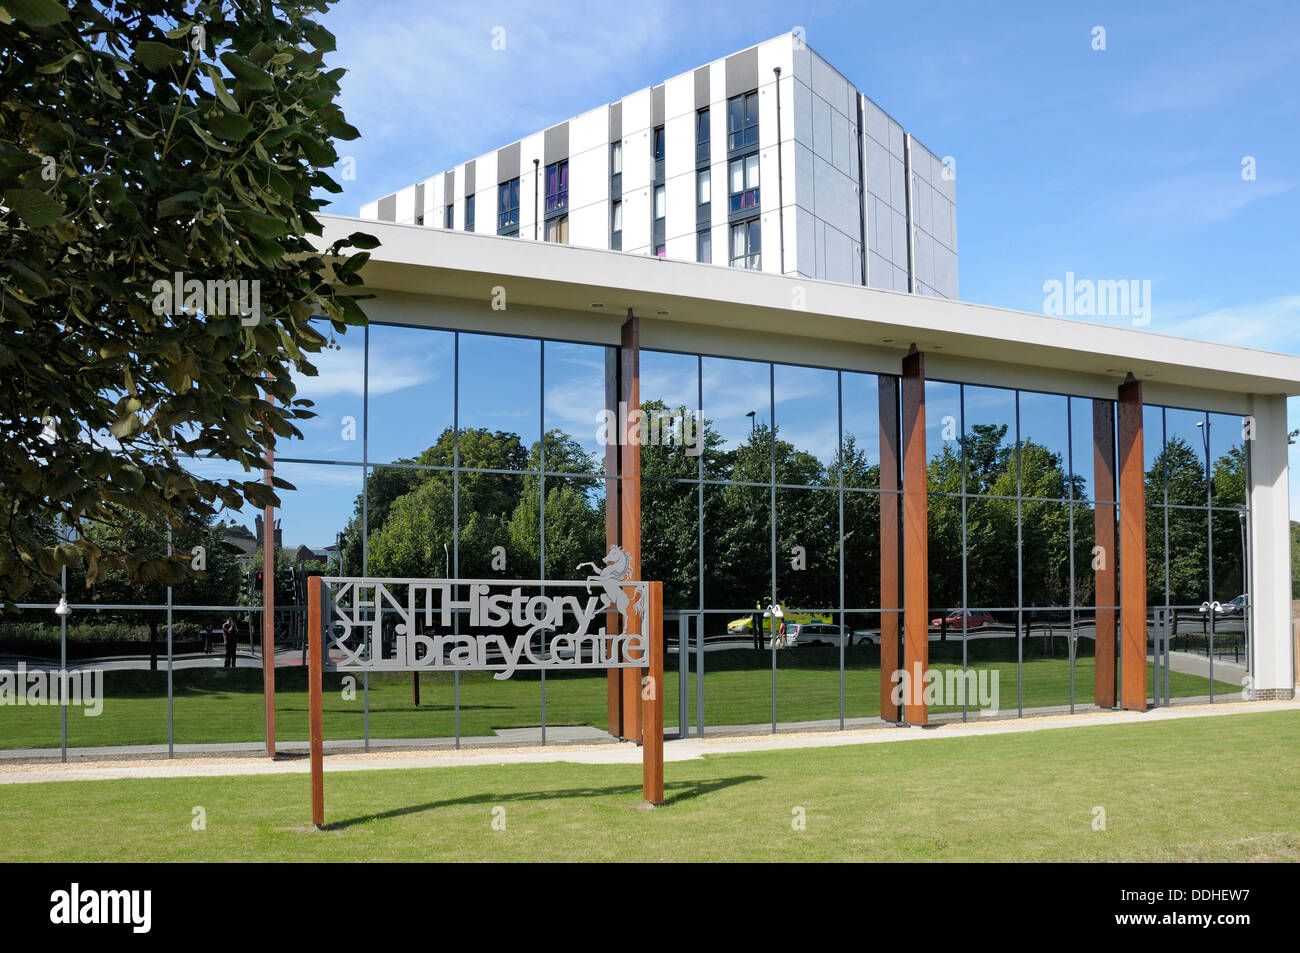 Maidstone, Kent, England, UK. Kent History and Library Centre (opened 2012) - Stock Image